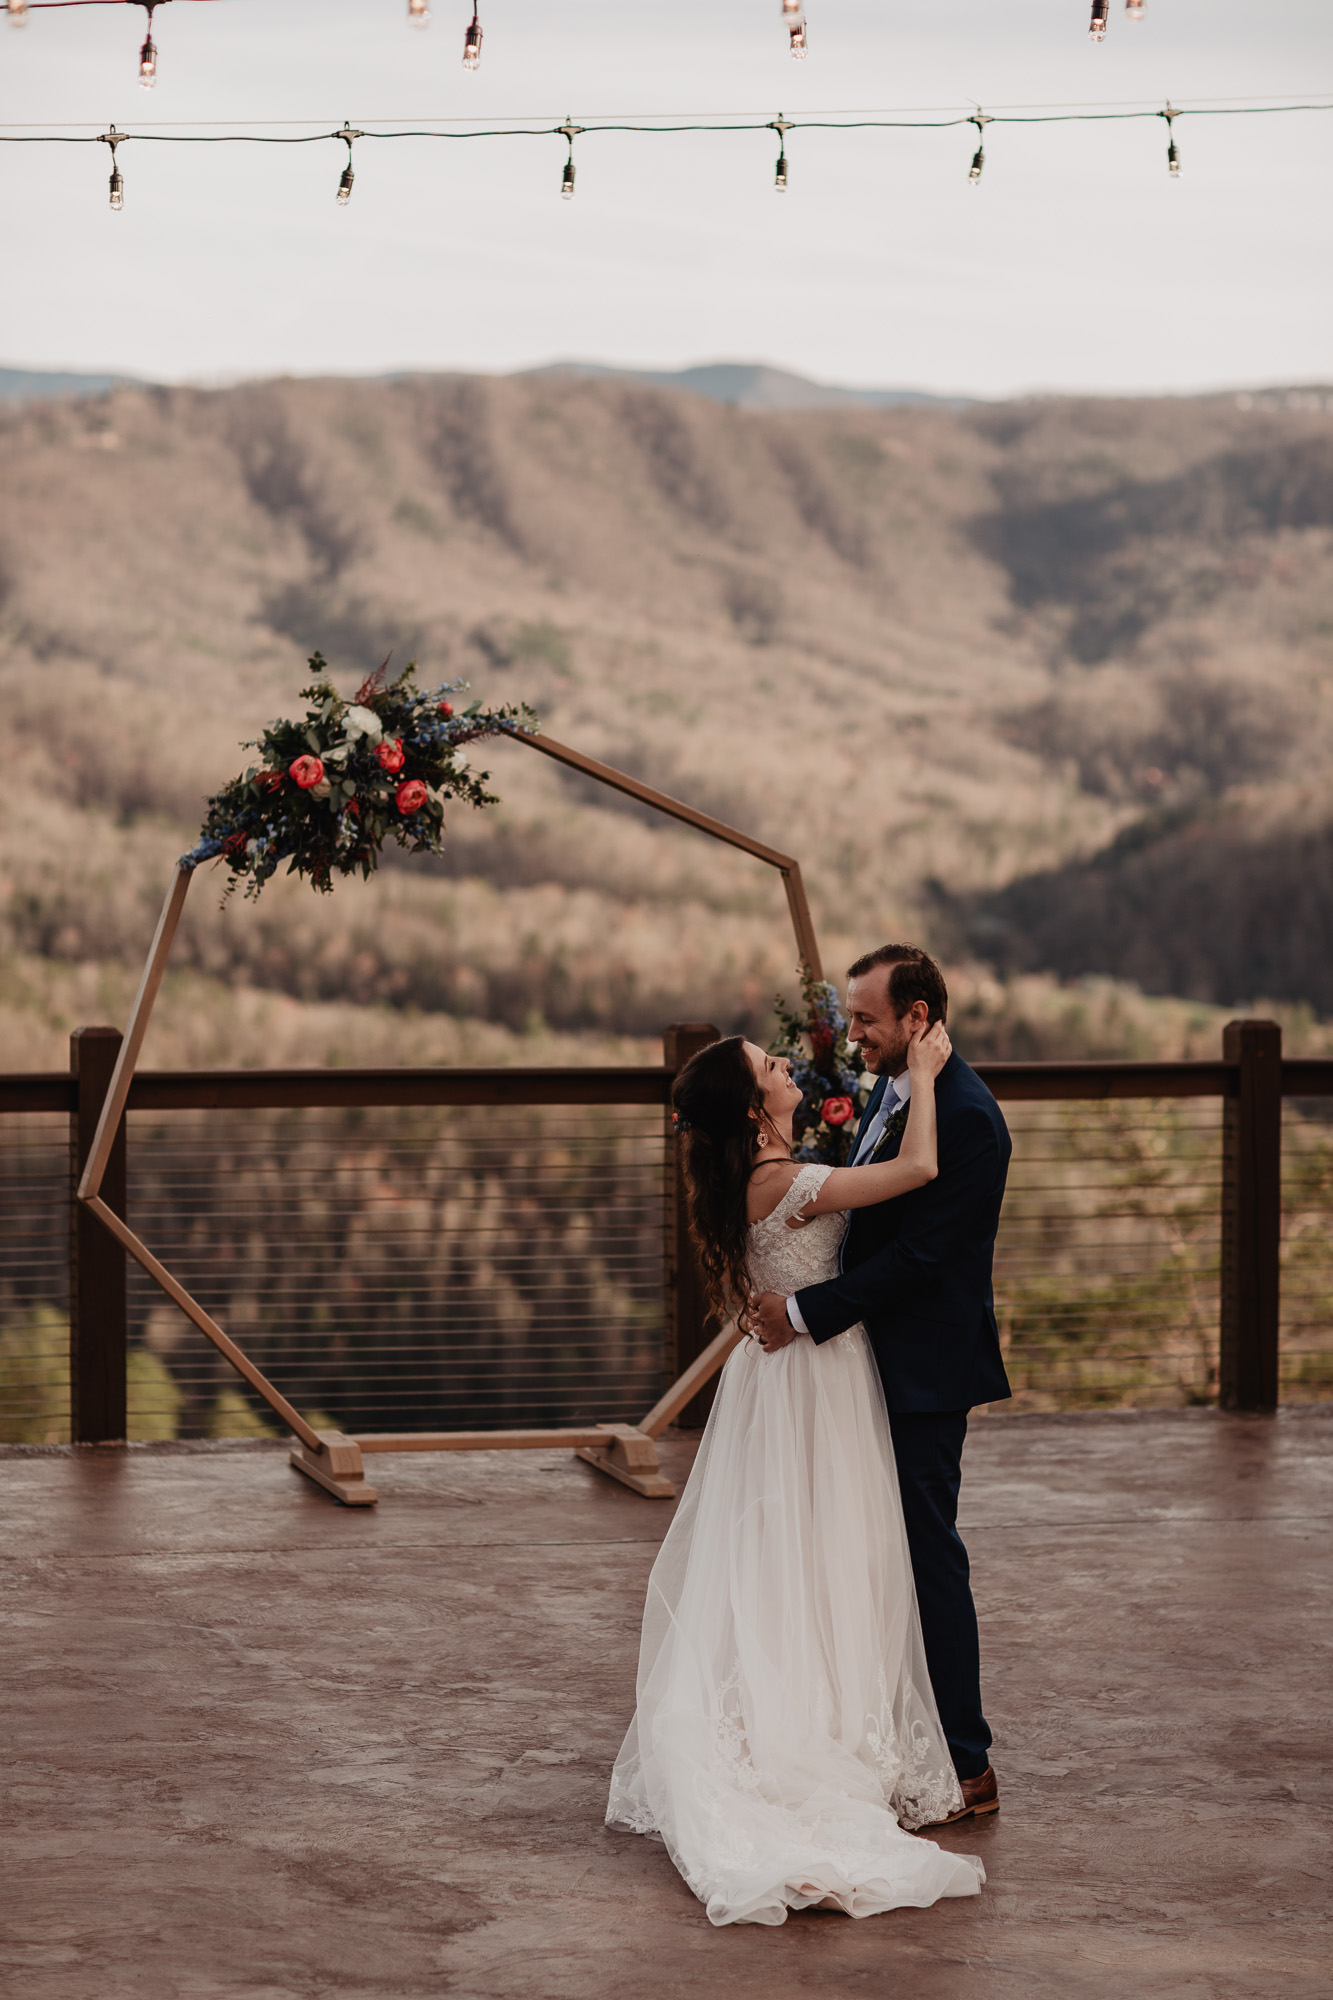 The Magnolia Venue Reception | Smoky Mountain Wedding Photographer | Magnolia + Ember